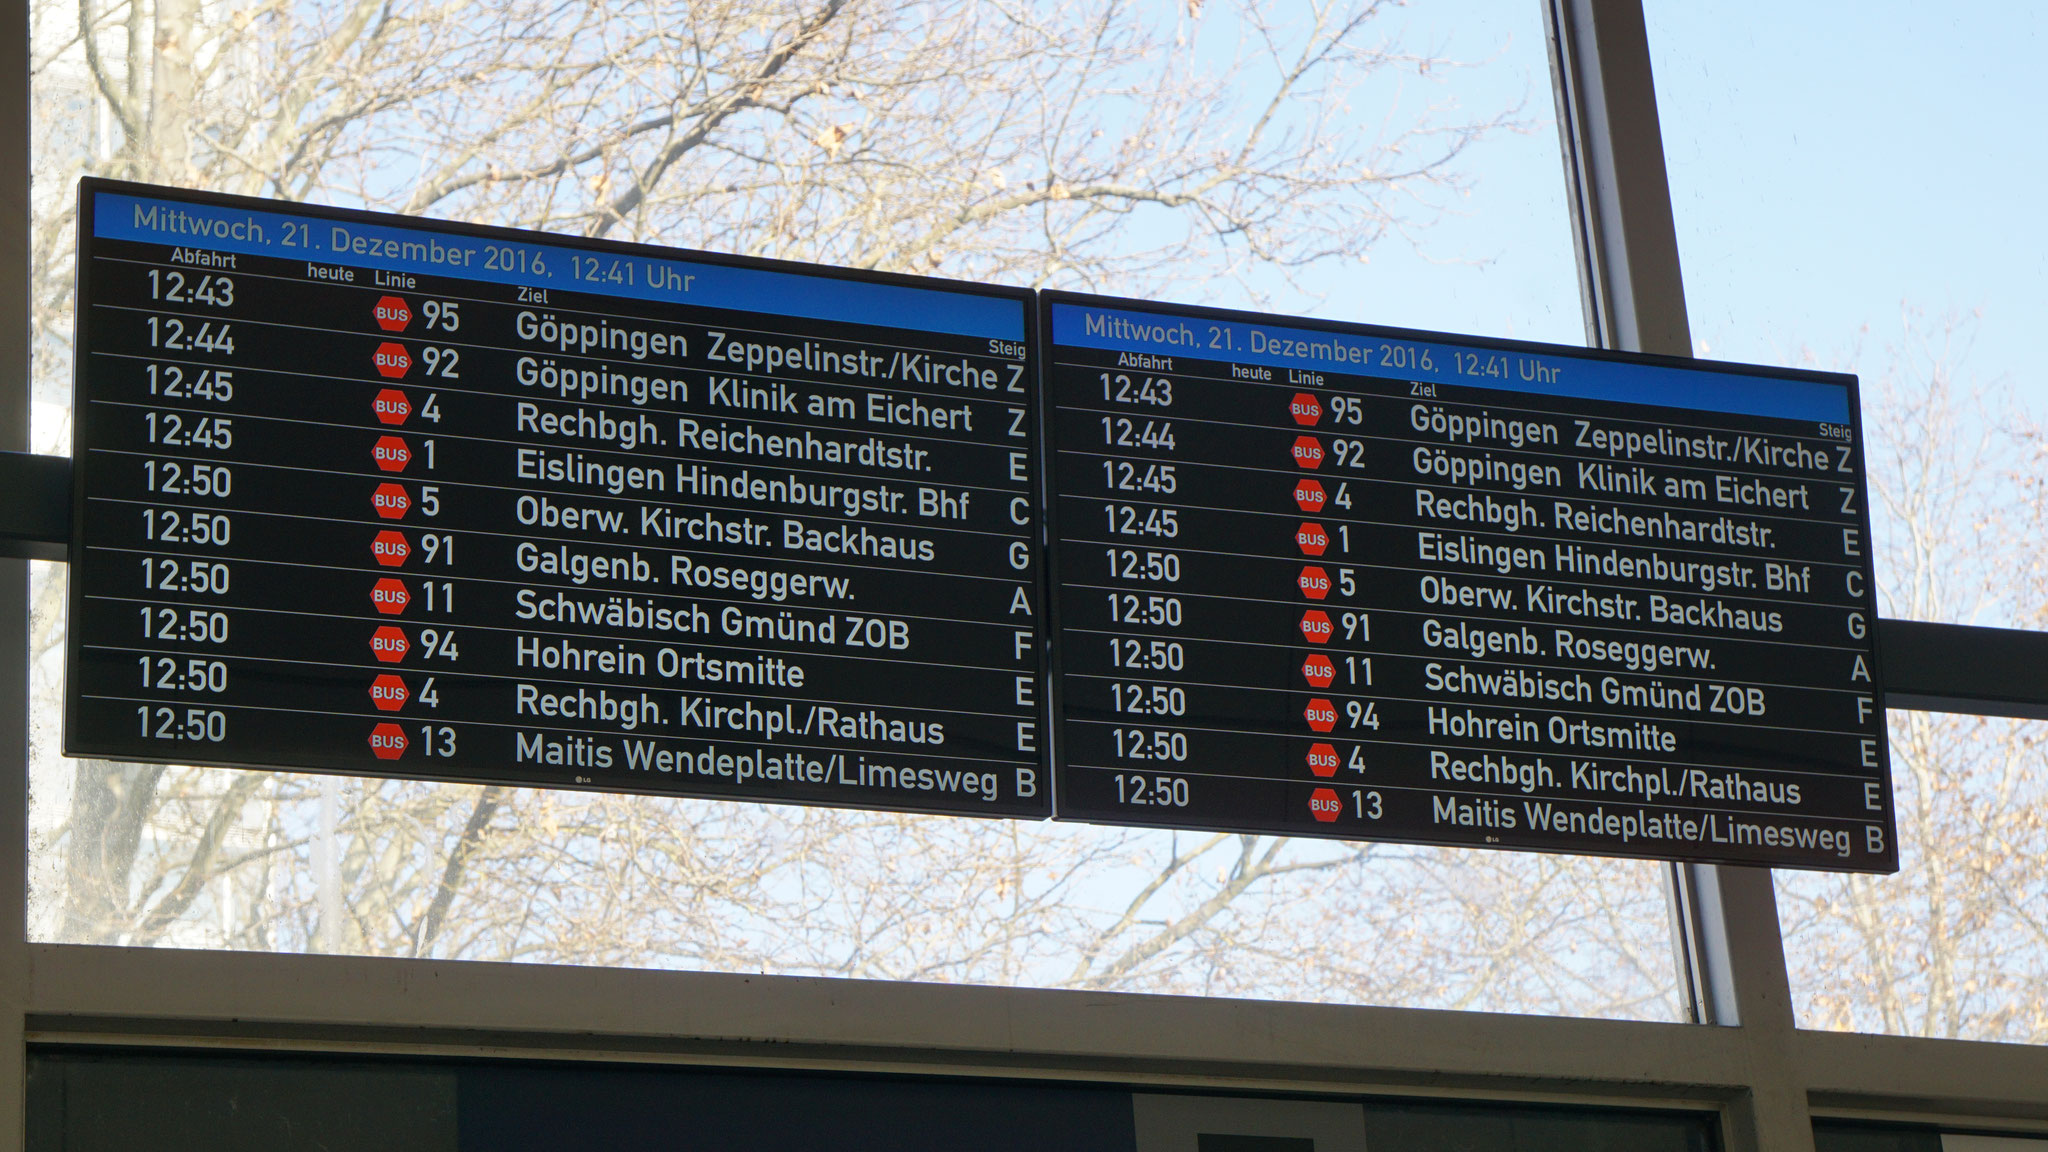 Overview display at the railway station Göppingen